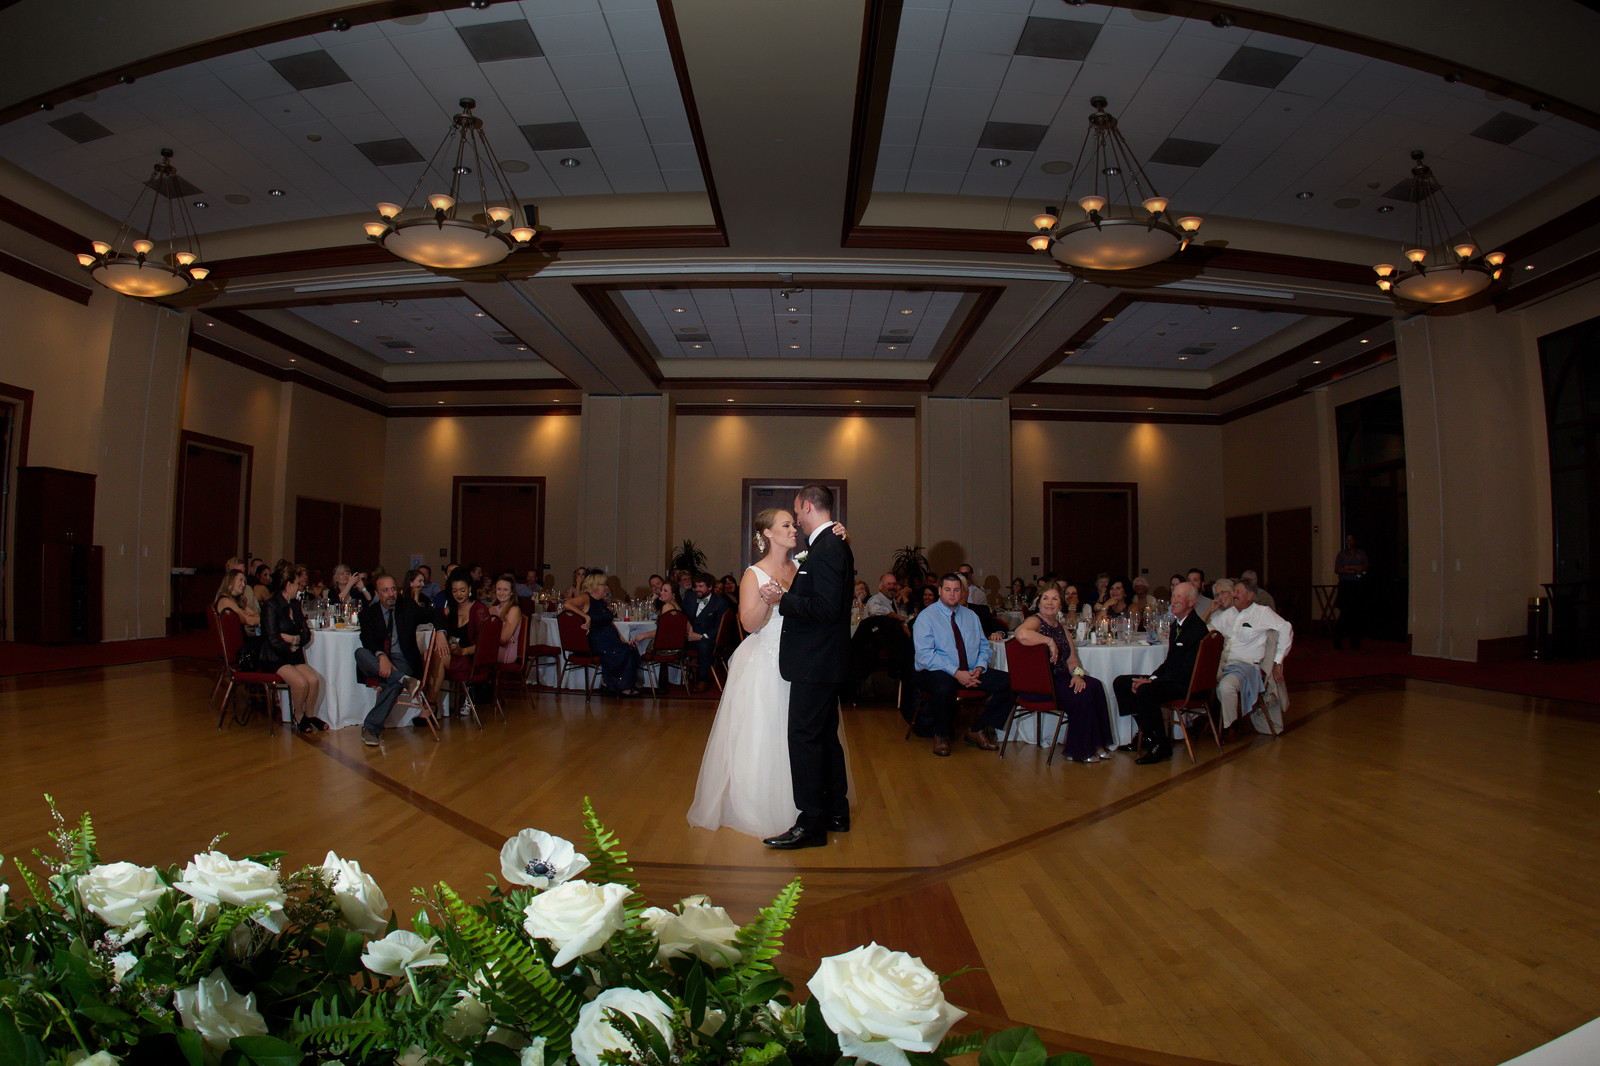 First Dance Songs - Mike Anderson Creative Memories Entertainment - Shelly and Saular Chuck Roberts Orchard Creek Lodge Wedding